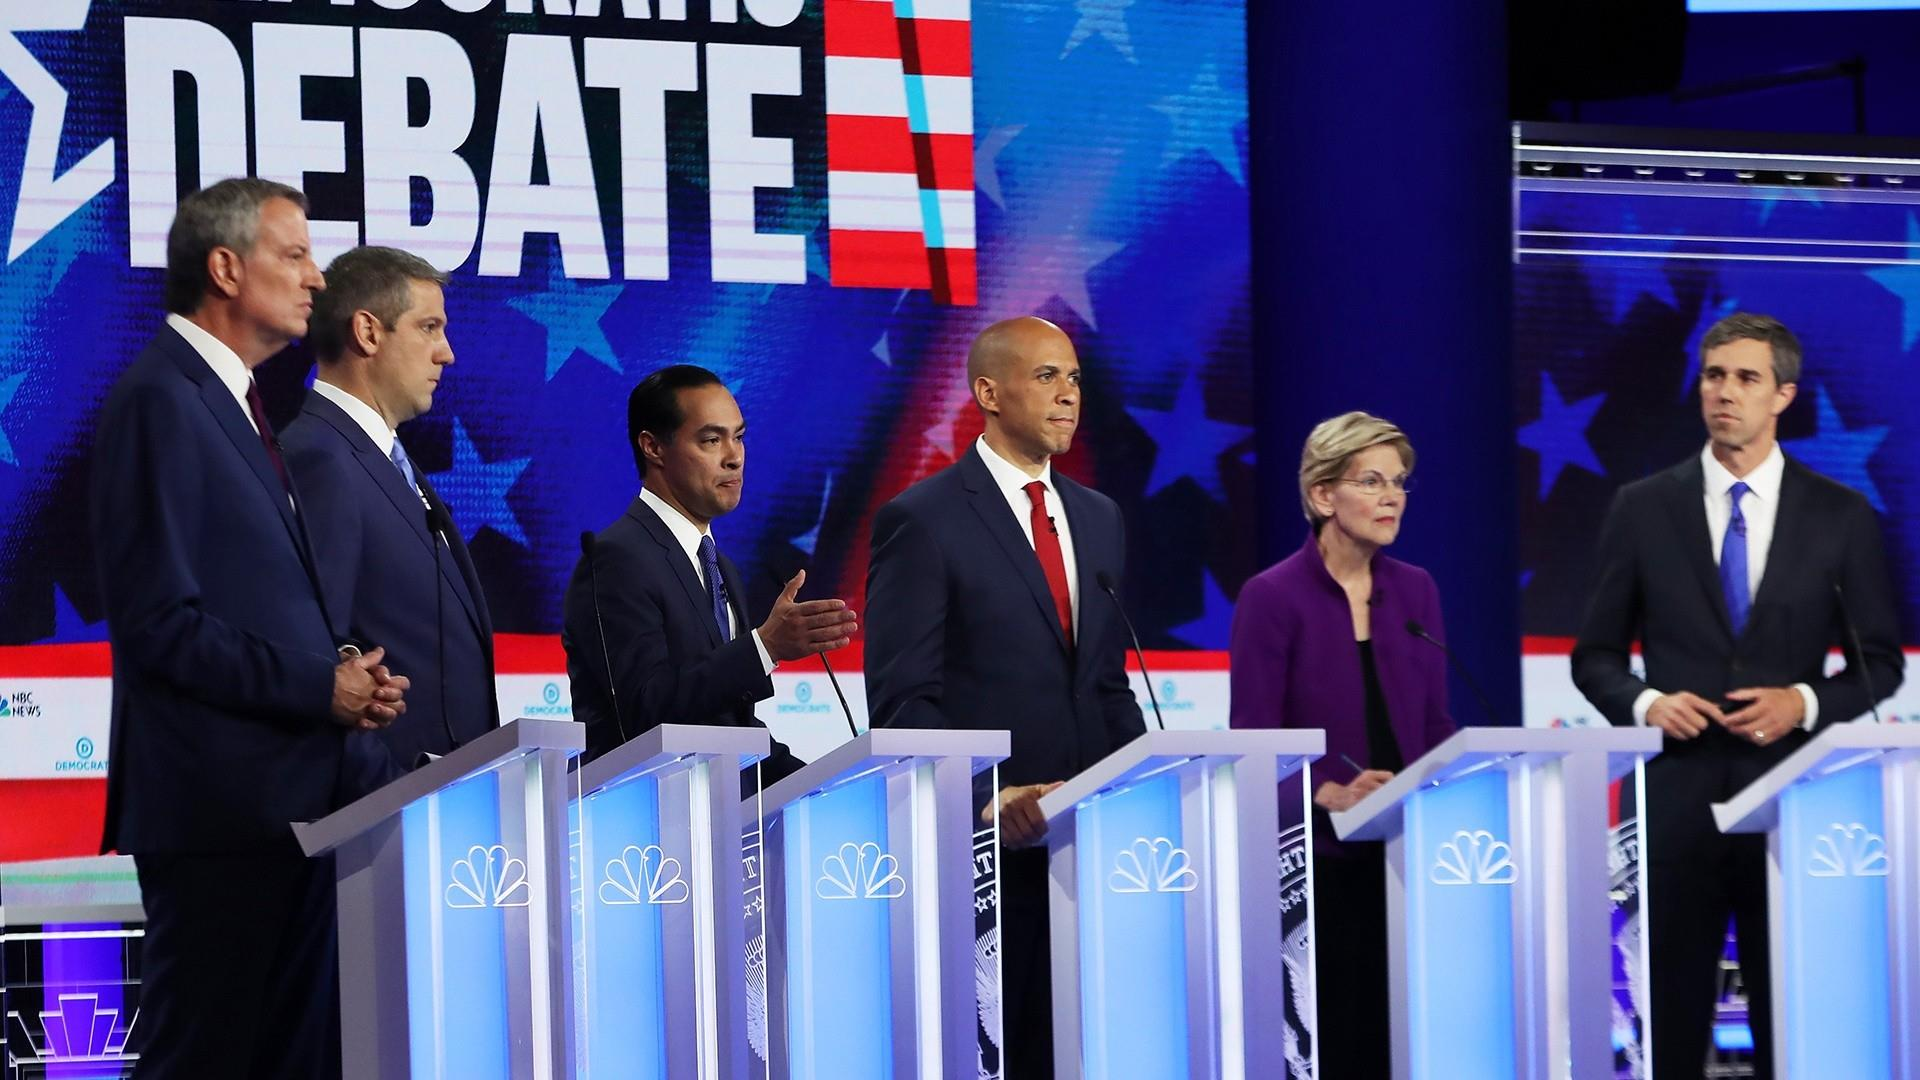 Chuck Todd: During 1st debate, Democrats leaned farther left 'in totality'